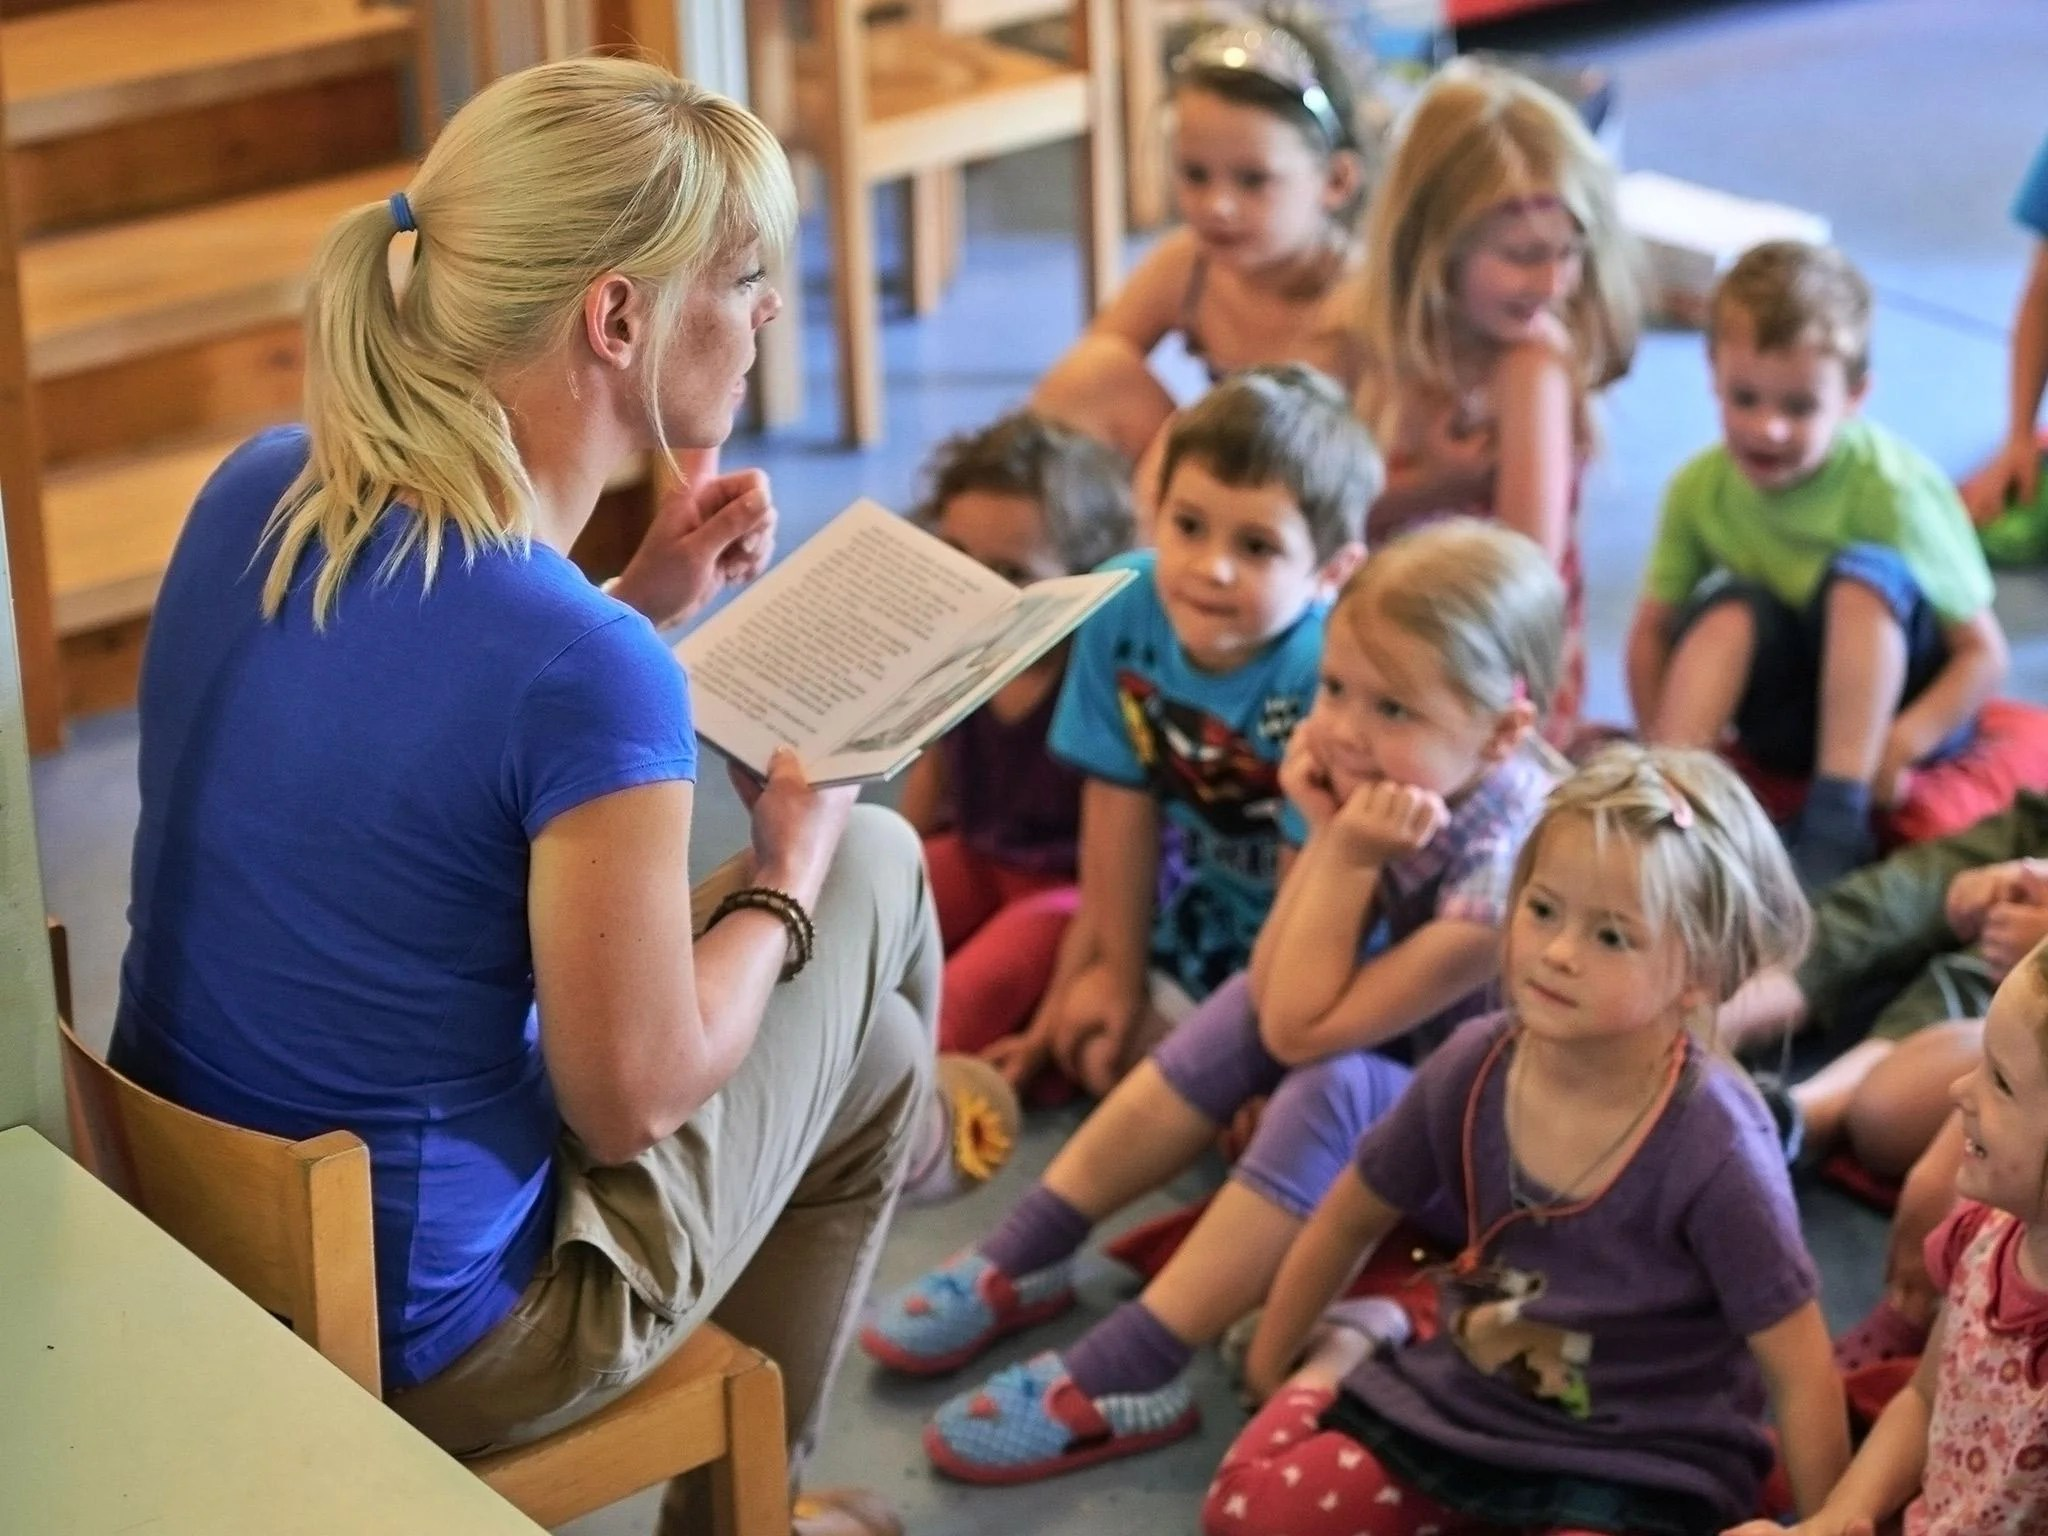 Children Better Off At Nursery Than At Home With Parents